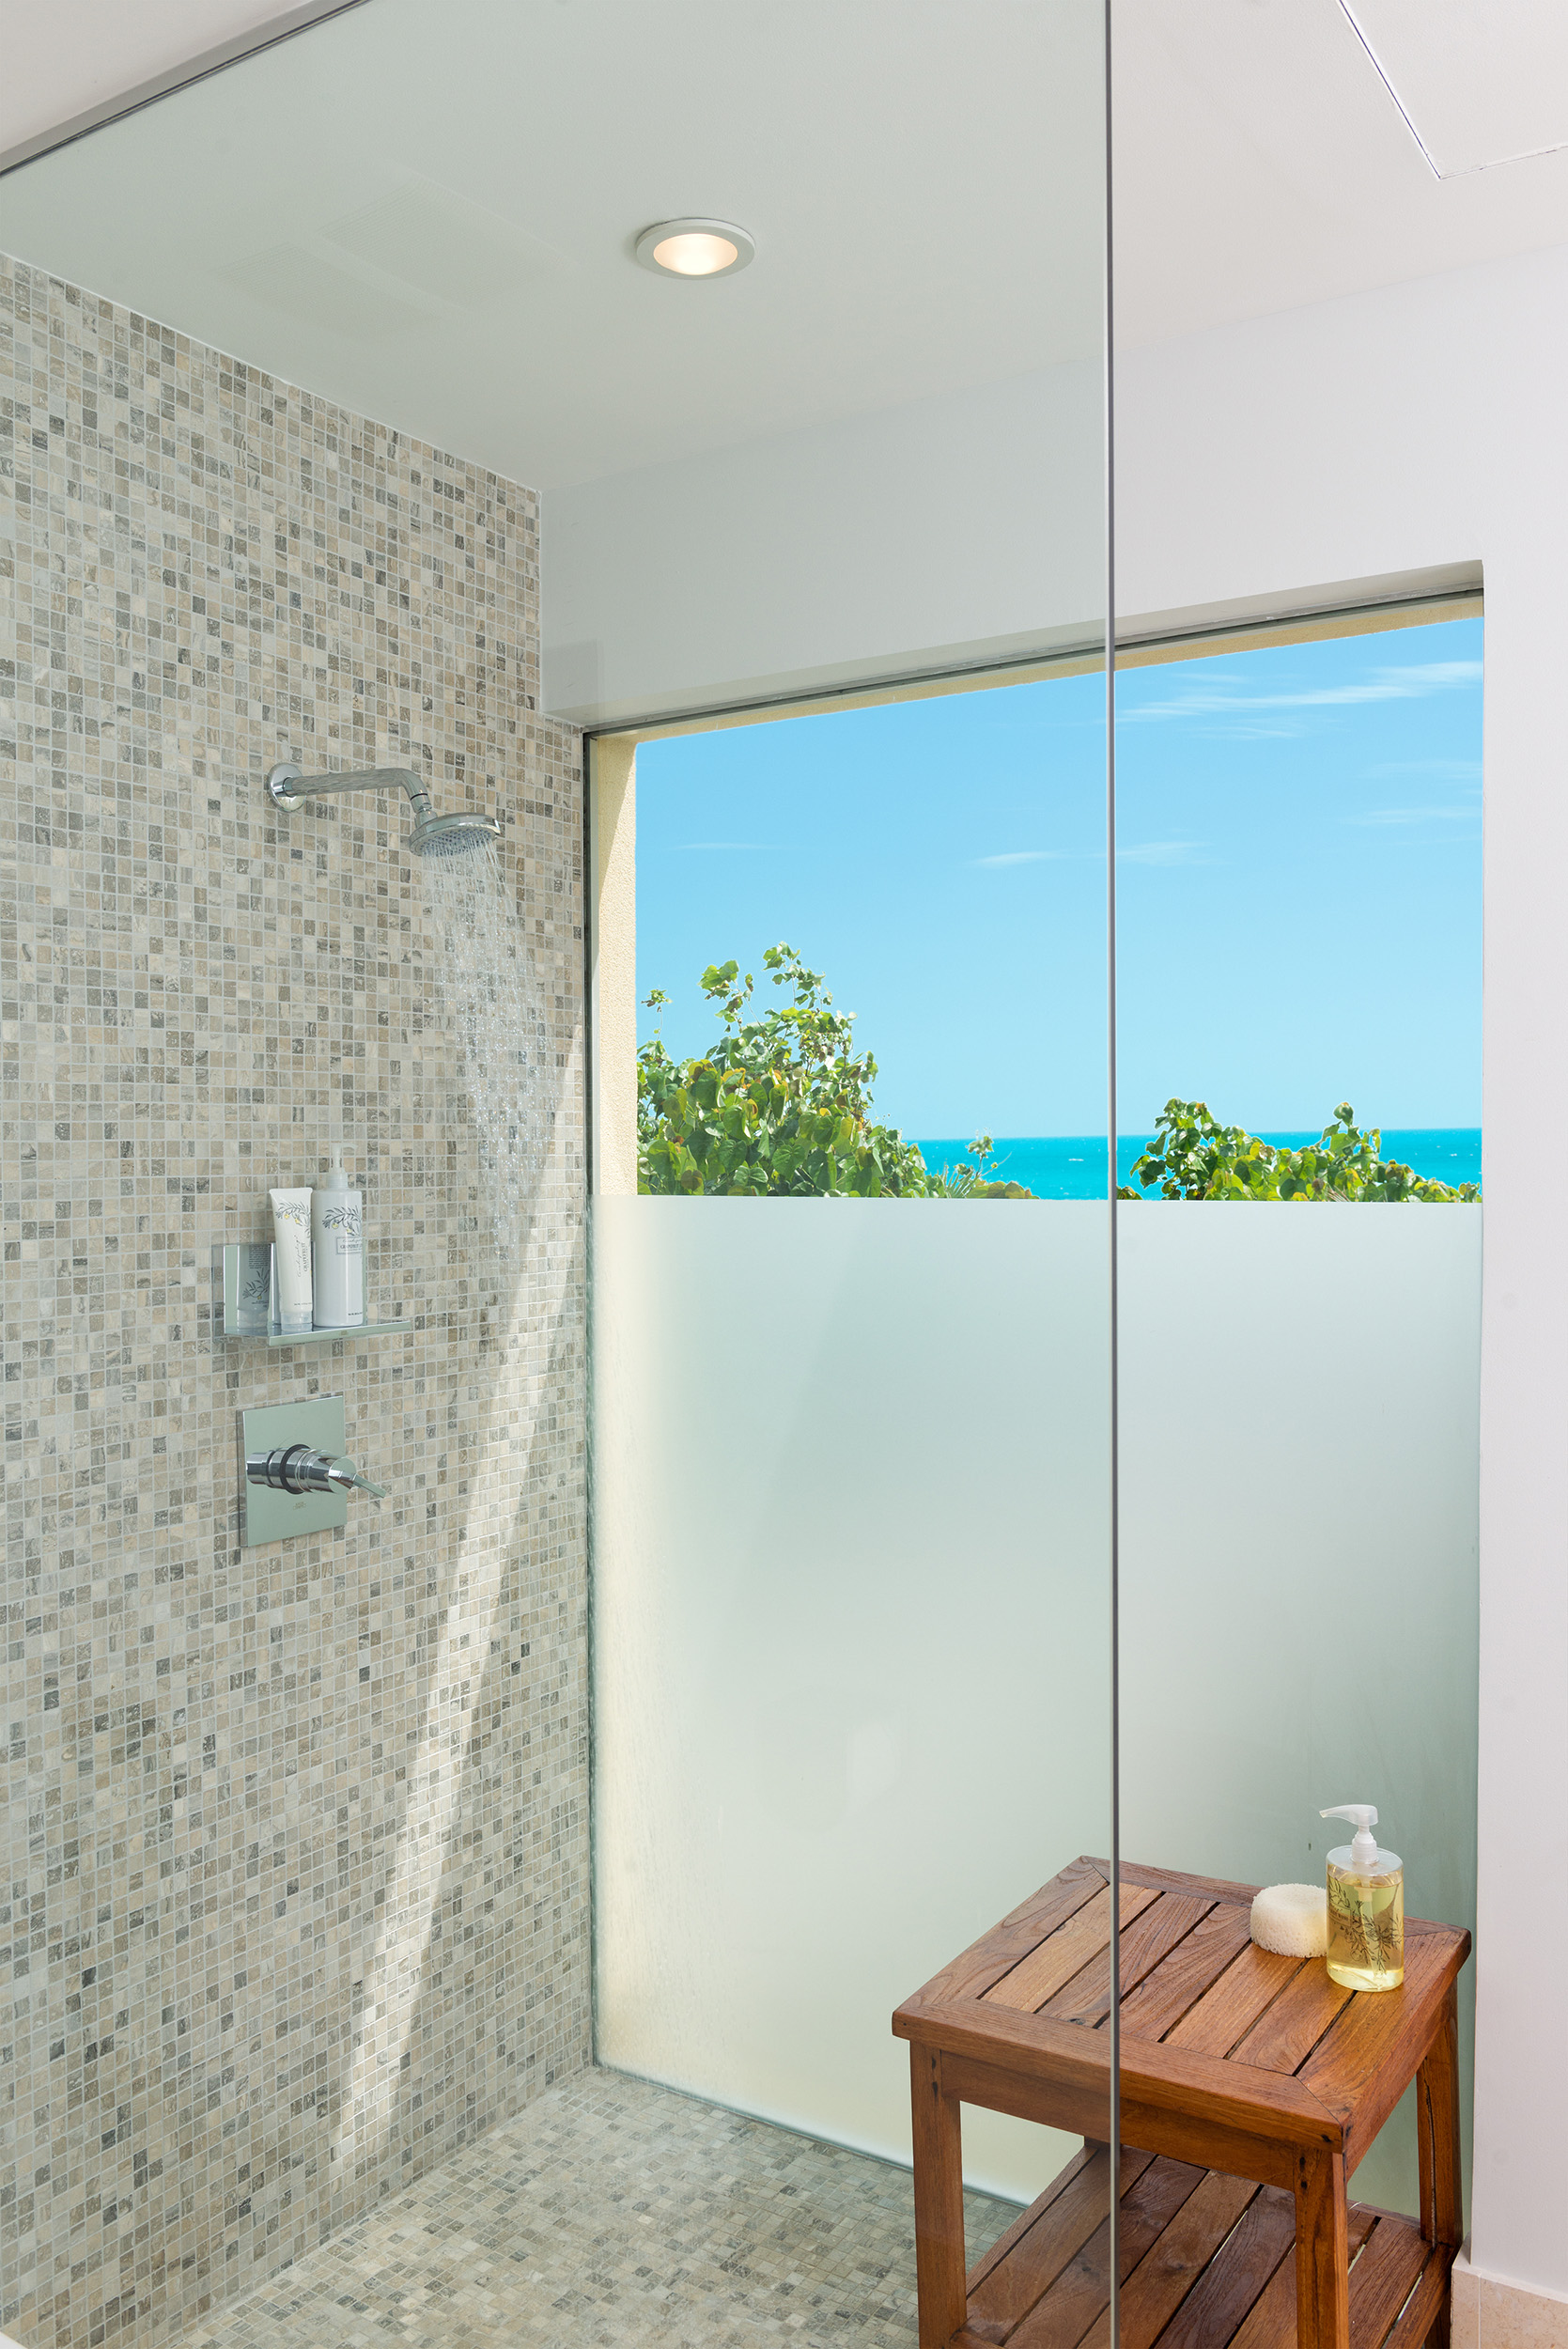 La Dolce Vita - view of one of the showers